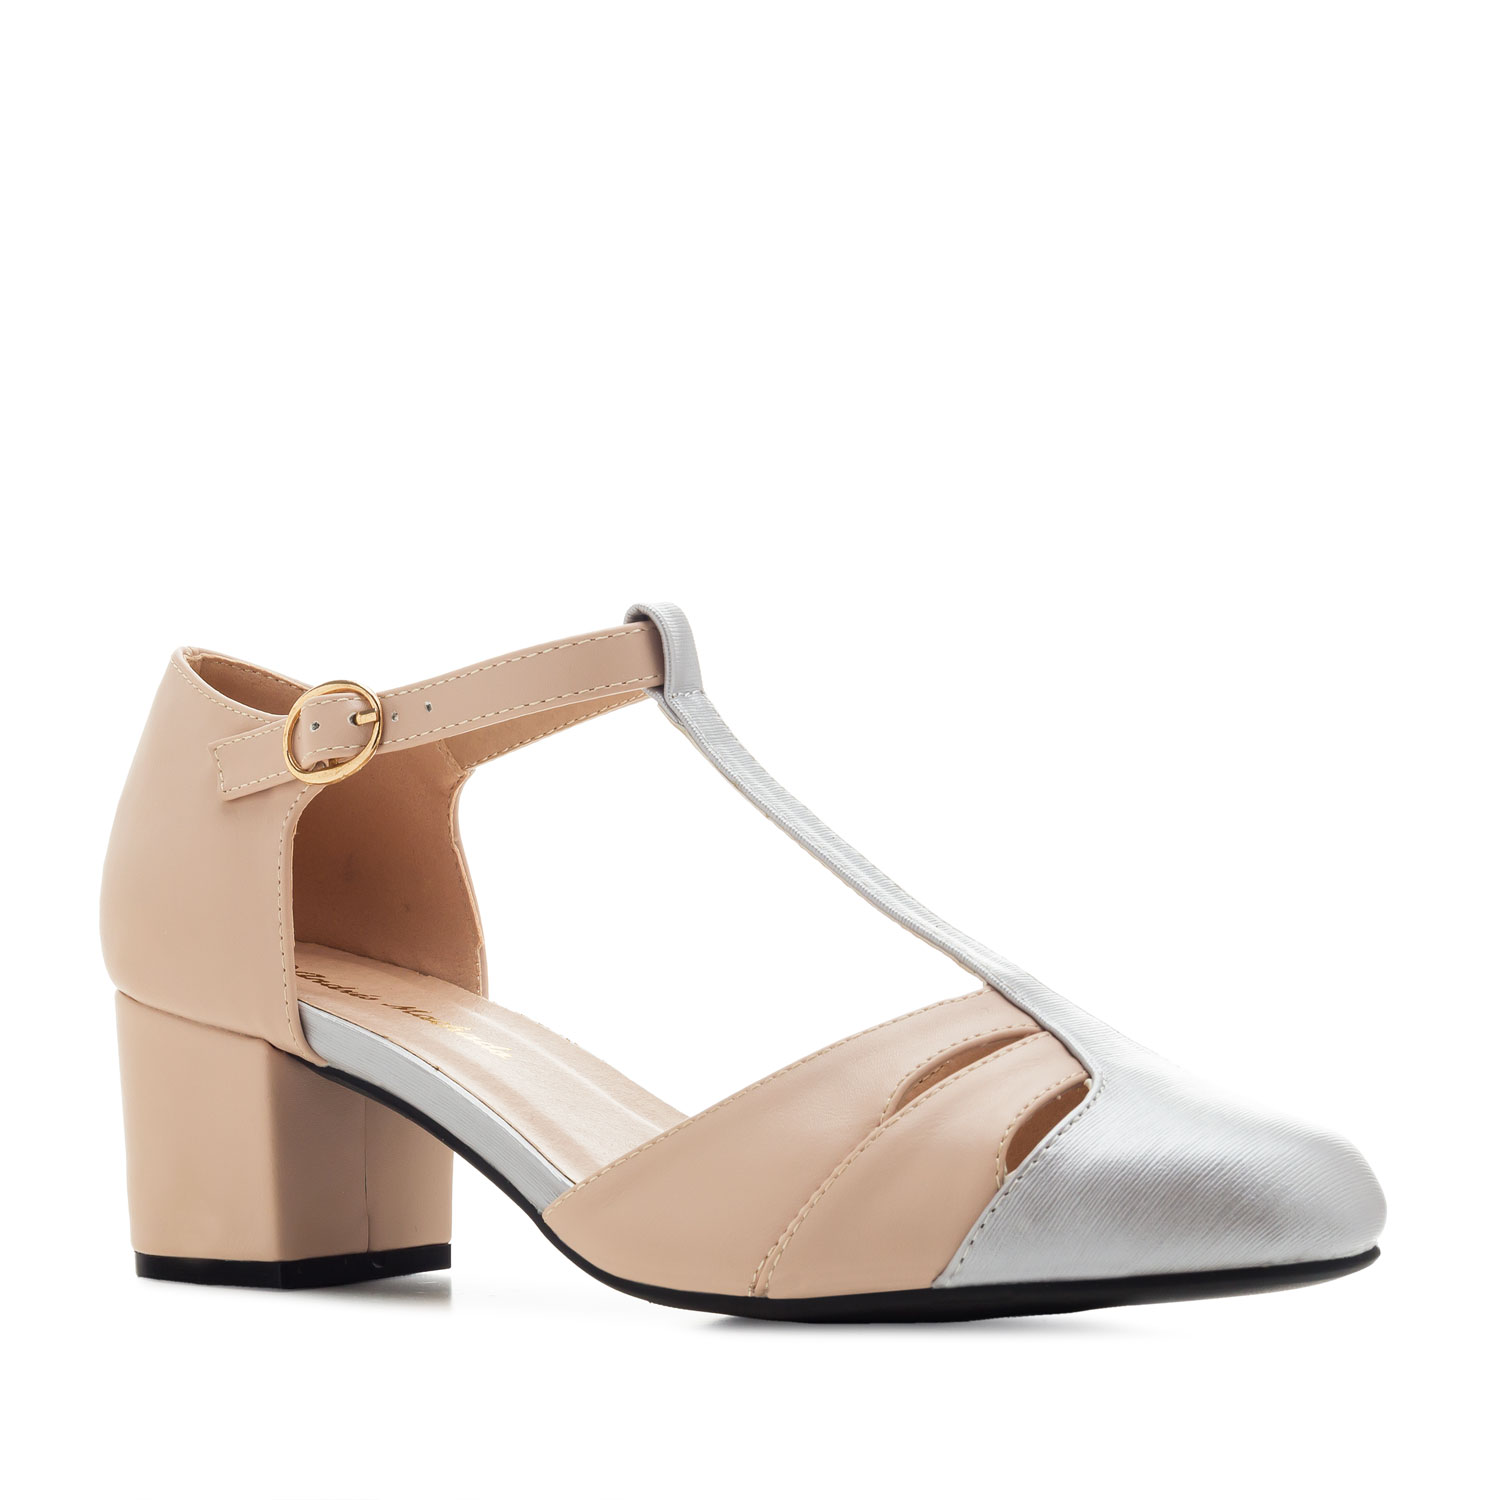 Charleston Shoes in Nude & Silver faux Leather